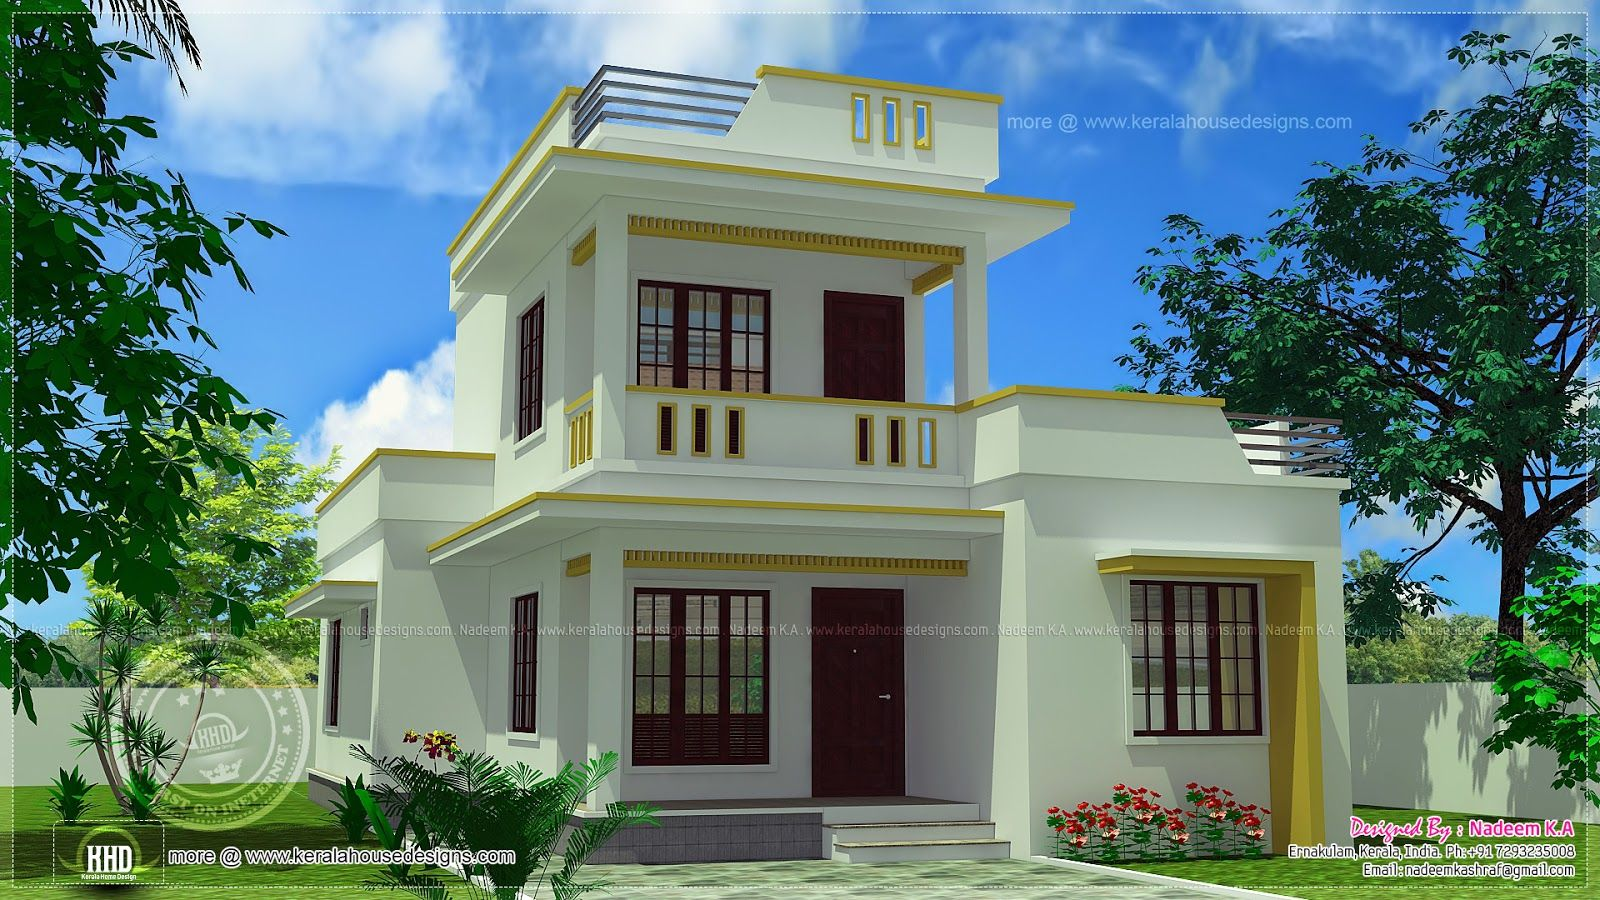 Basic Construction Needs Of Simple House Design Freshnist In 2020